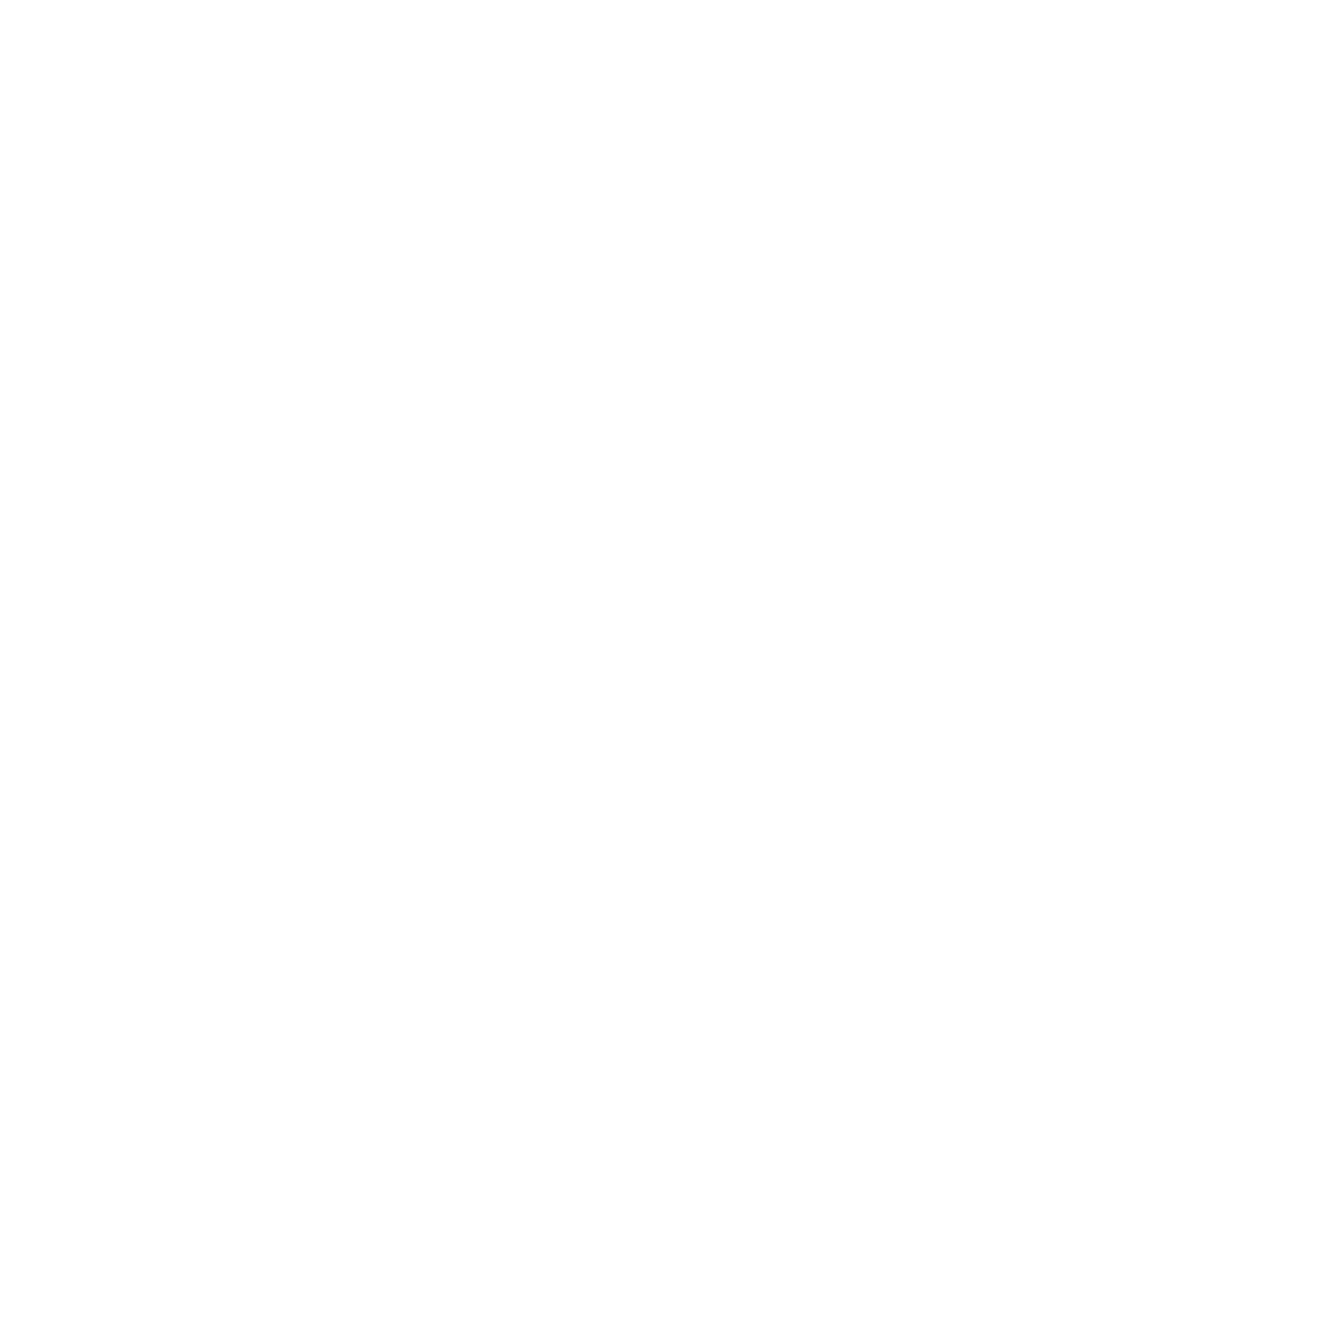 Renewables Networking Platform